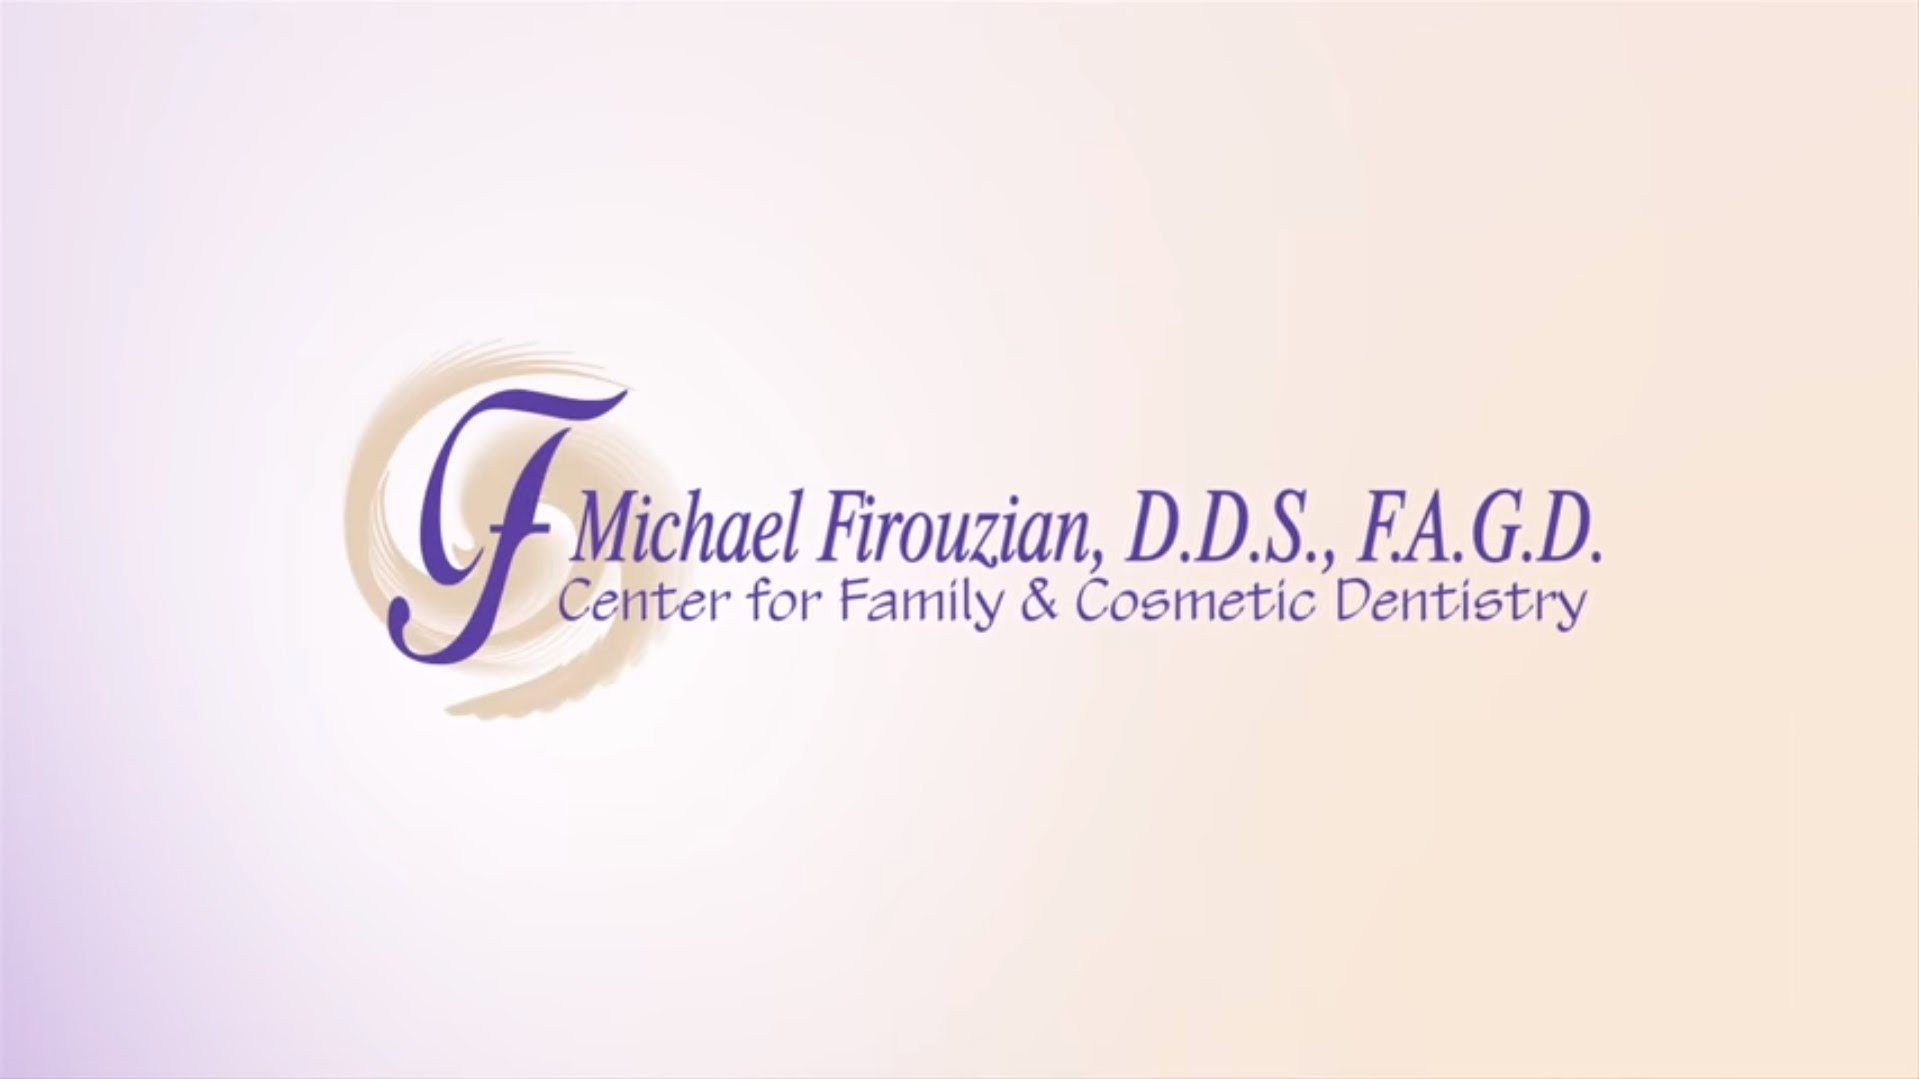 Dr. Firouzian talks about his practice